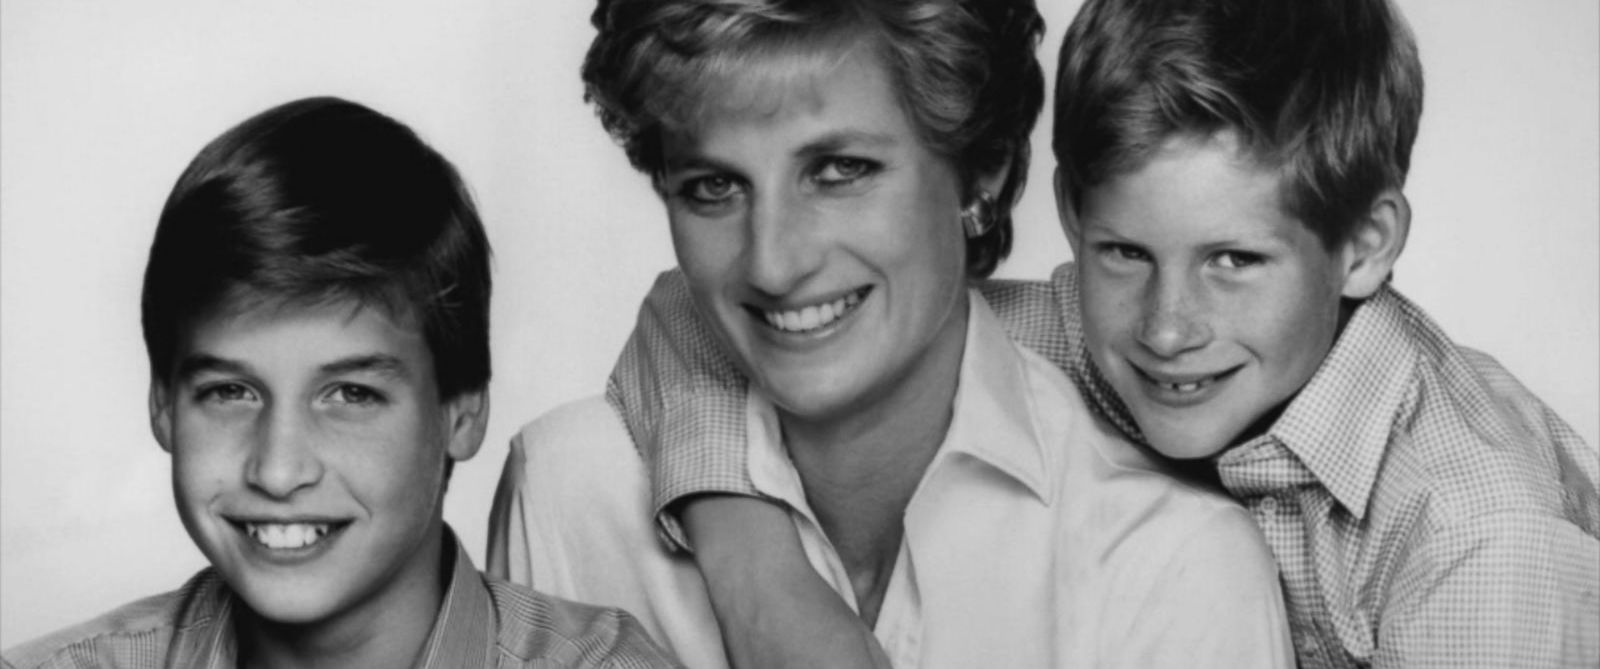 VIDEO: Princes William and Harry give intimate portrayal of their mother